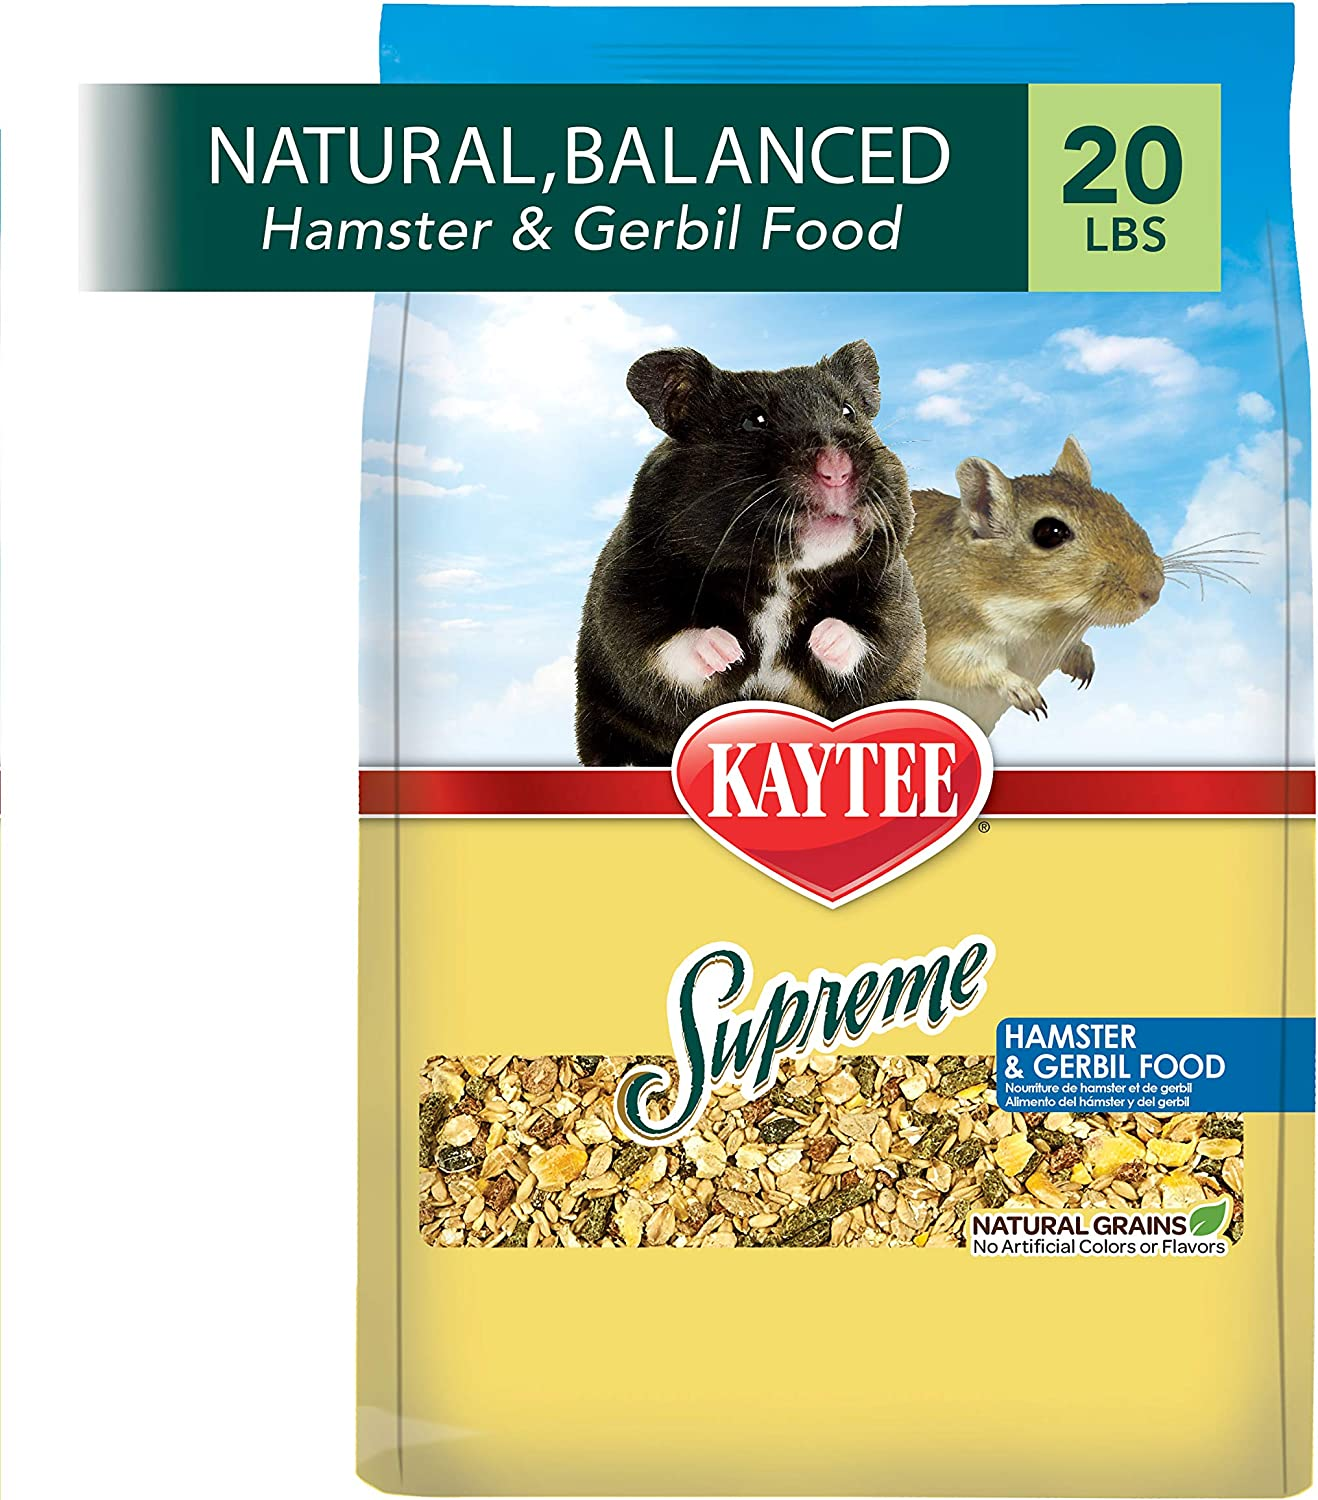 Kaytee Supreme Hamster And Gerbil Food, 20-Lb Bag